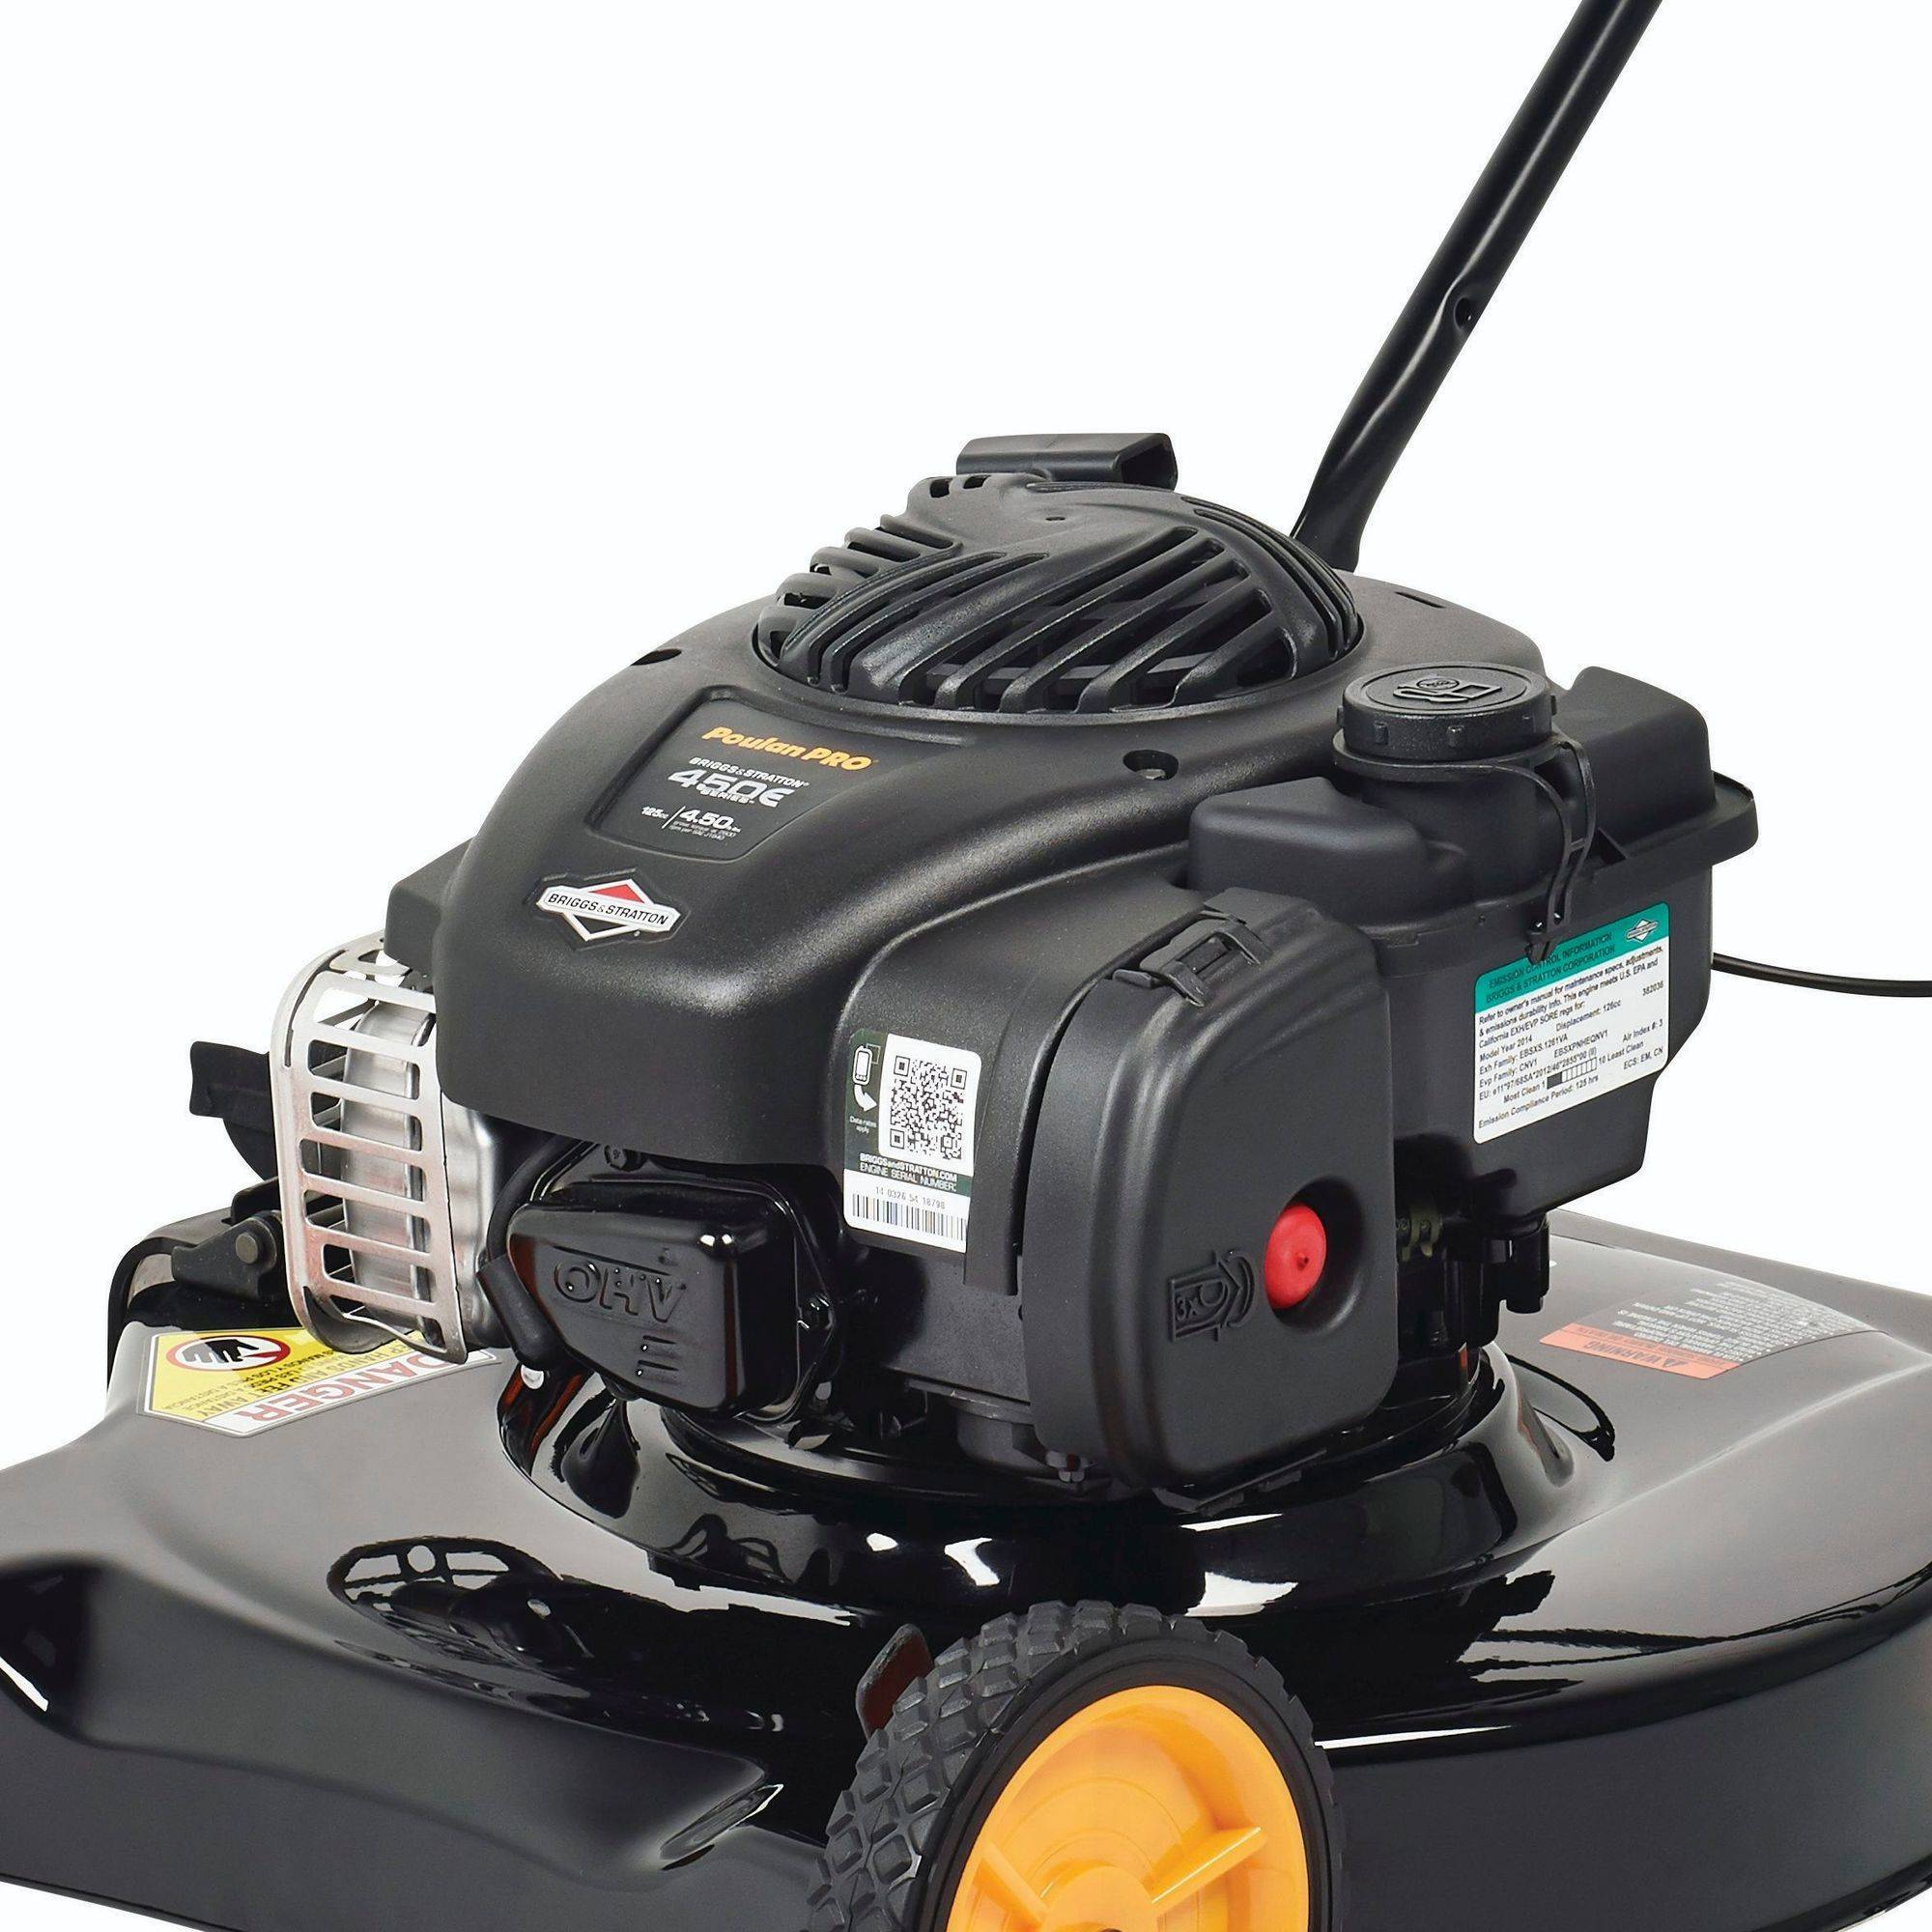 Poulan Pro 20 U0026quot  125cc Gas Powered  Side-discharged Push Lawn Mower